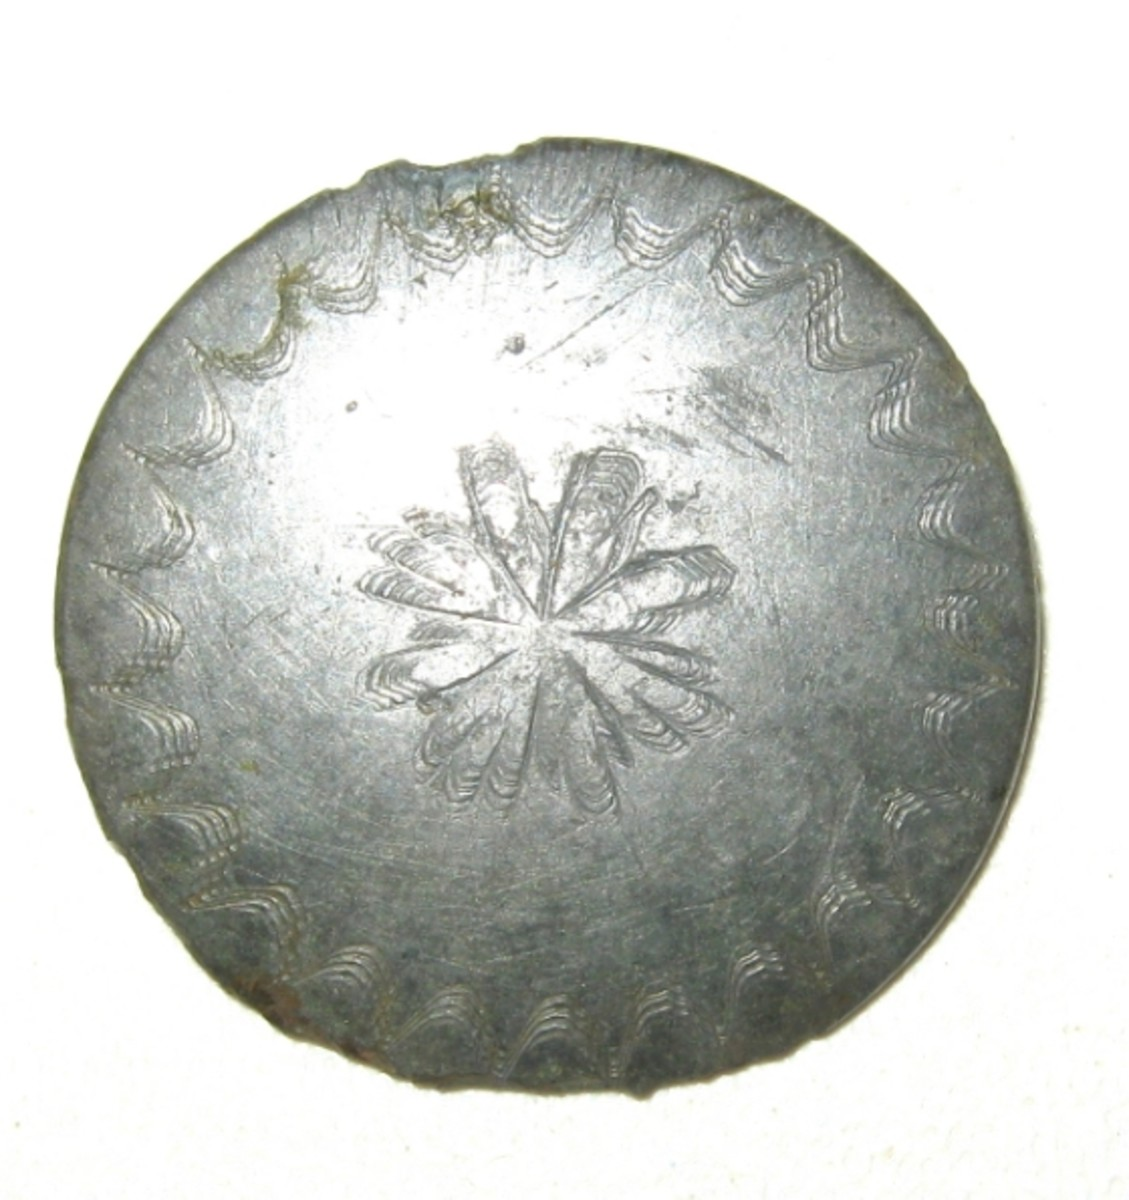 An 18th century Tombac button found on a pasture field.